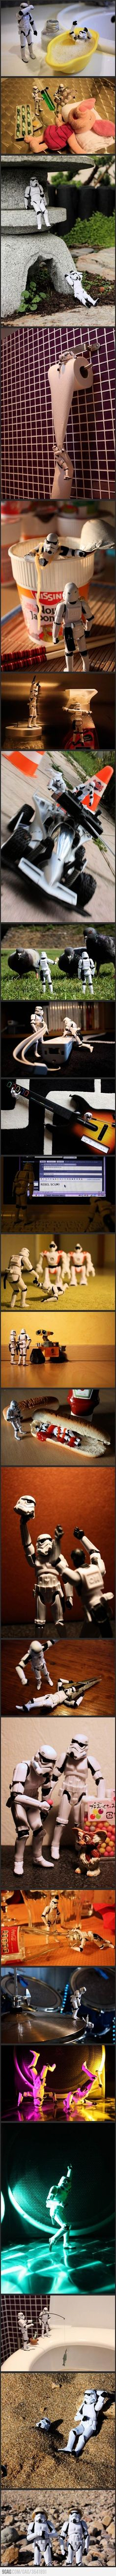 Stormtrooper - Moments of life  I would love to do this!